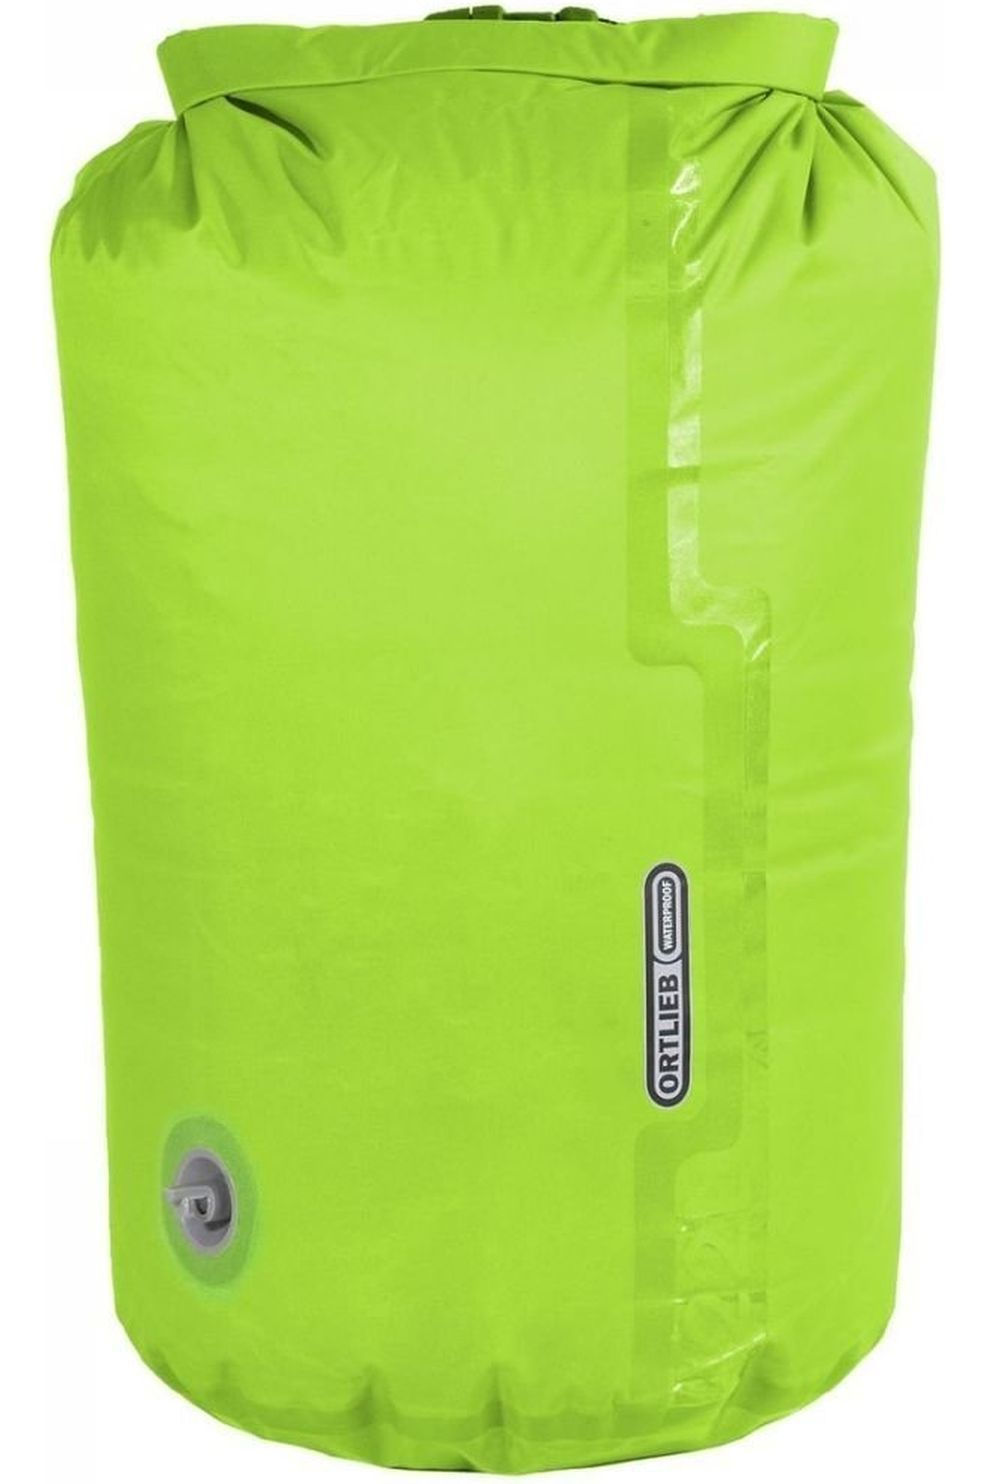 ORTLIEB Accessoire Lightw. Compr. Dry Bag With Valve 12L Orange - Groen